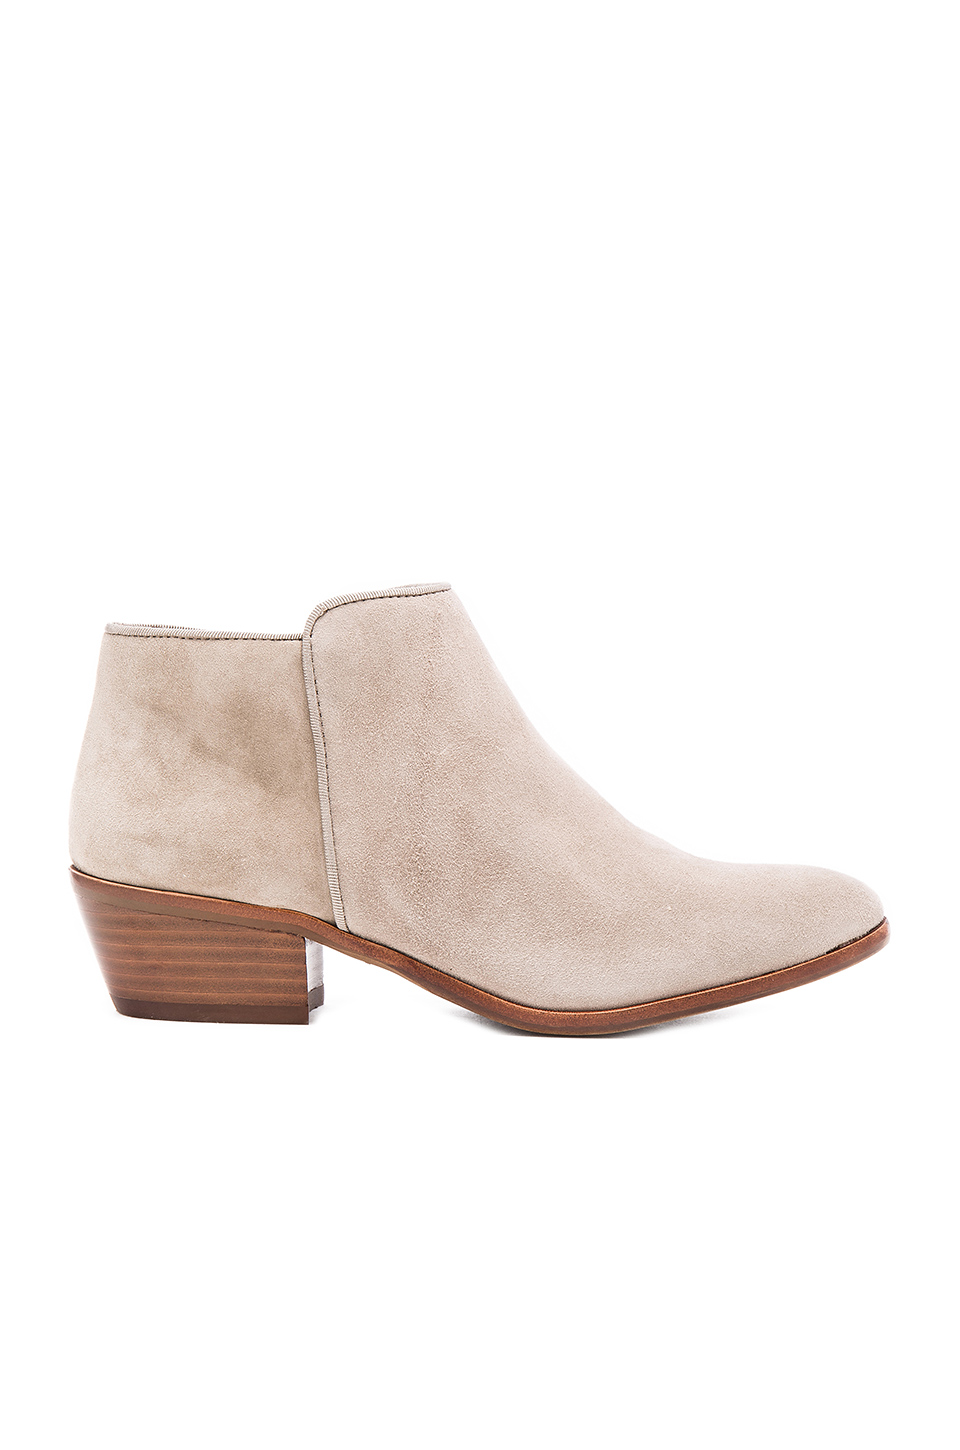 Sam Edelman Petty Suede Ankle Bootie, Putty In Putty Suede